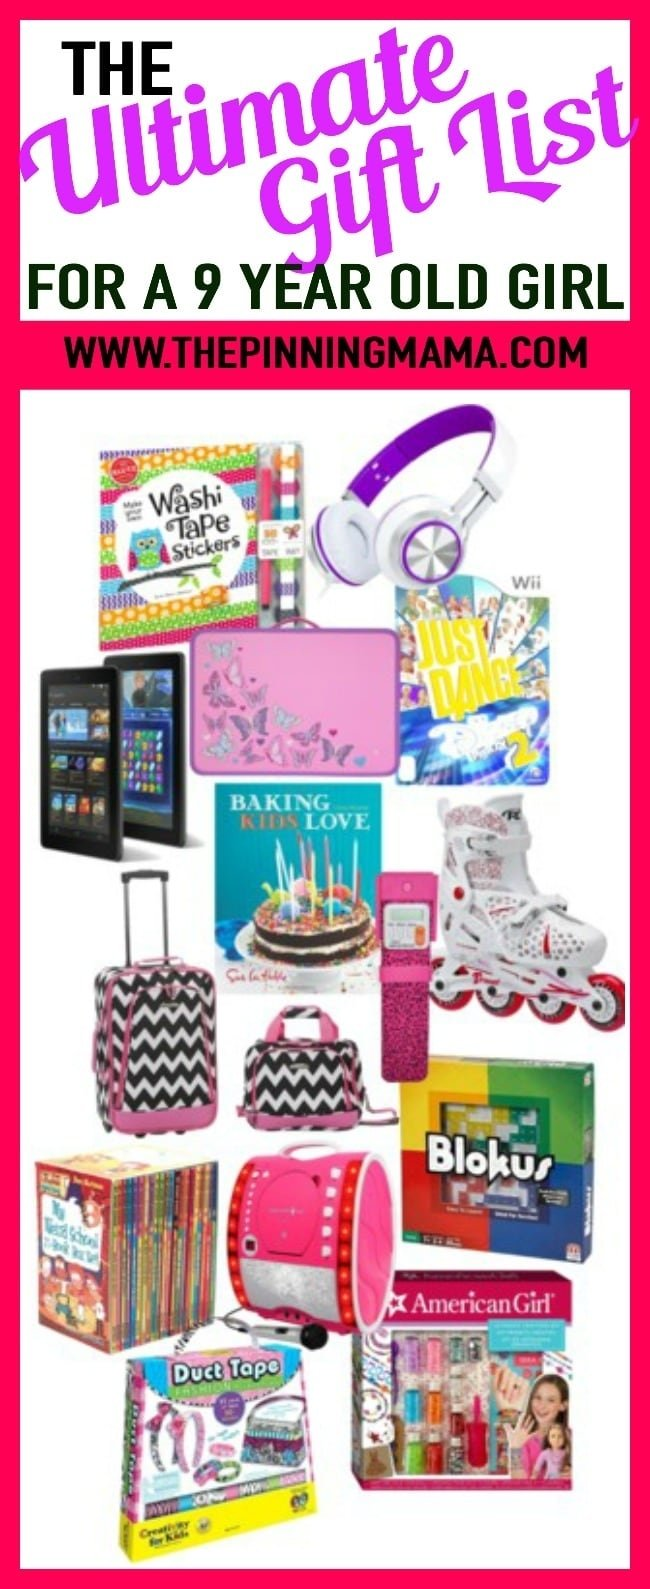 the ultimate gift list for a 9 year old girl • the pinning mama